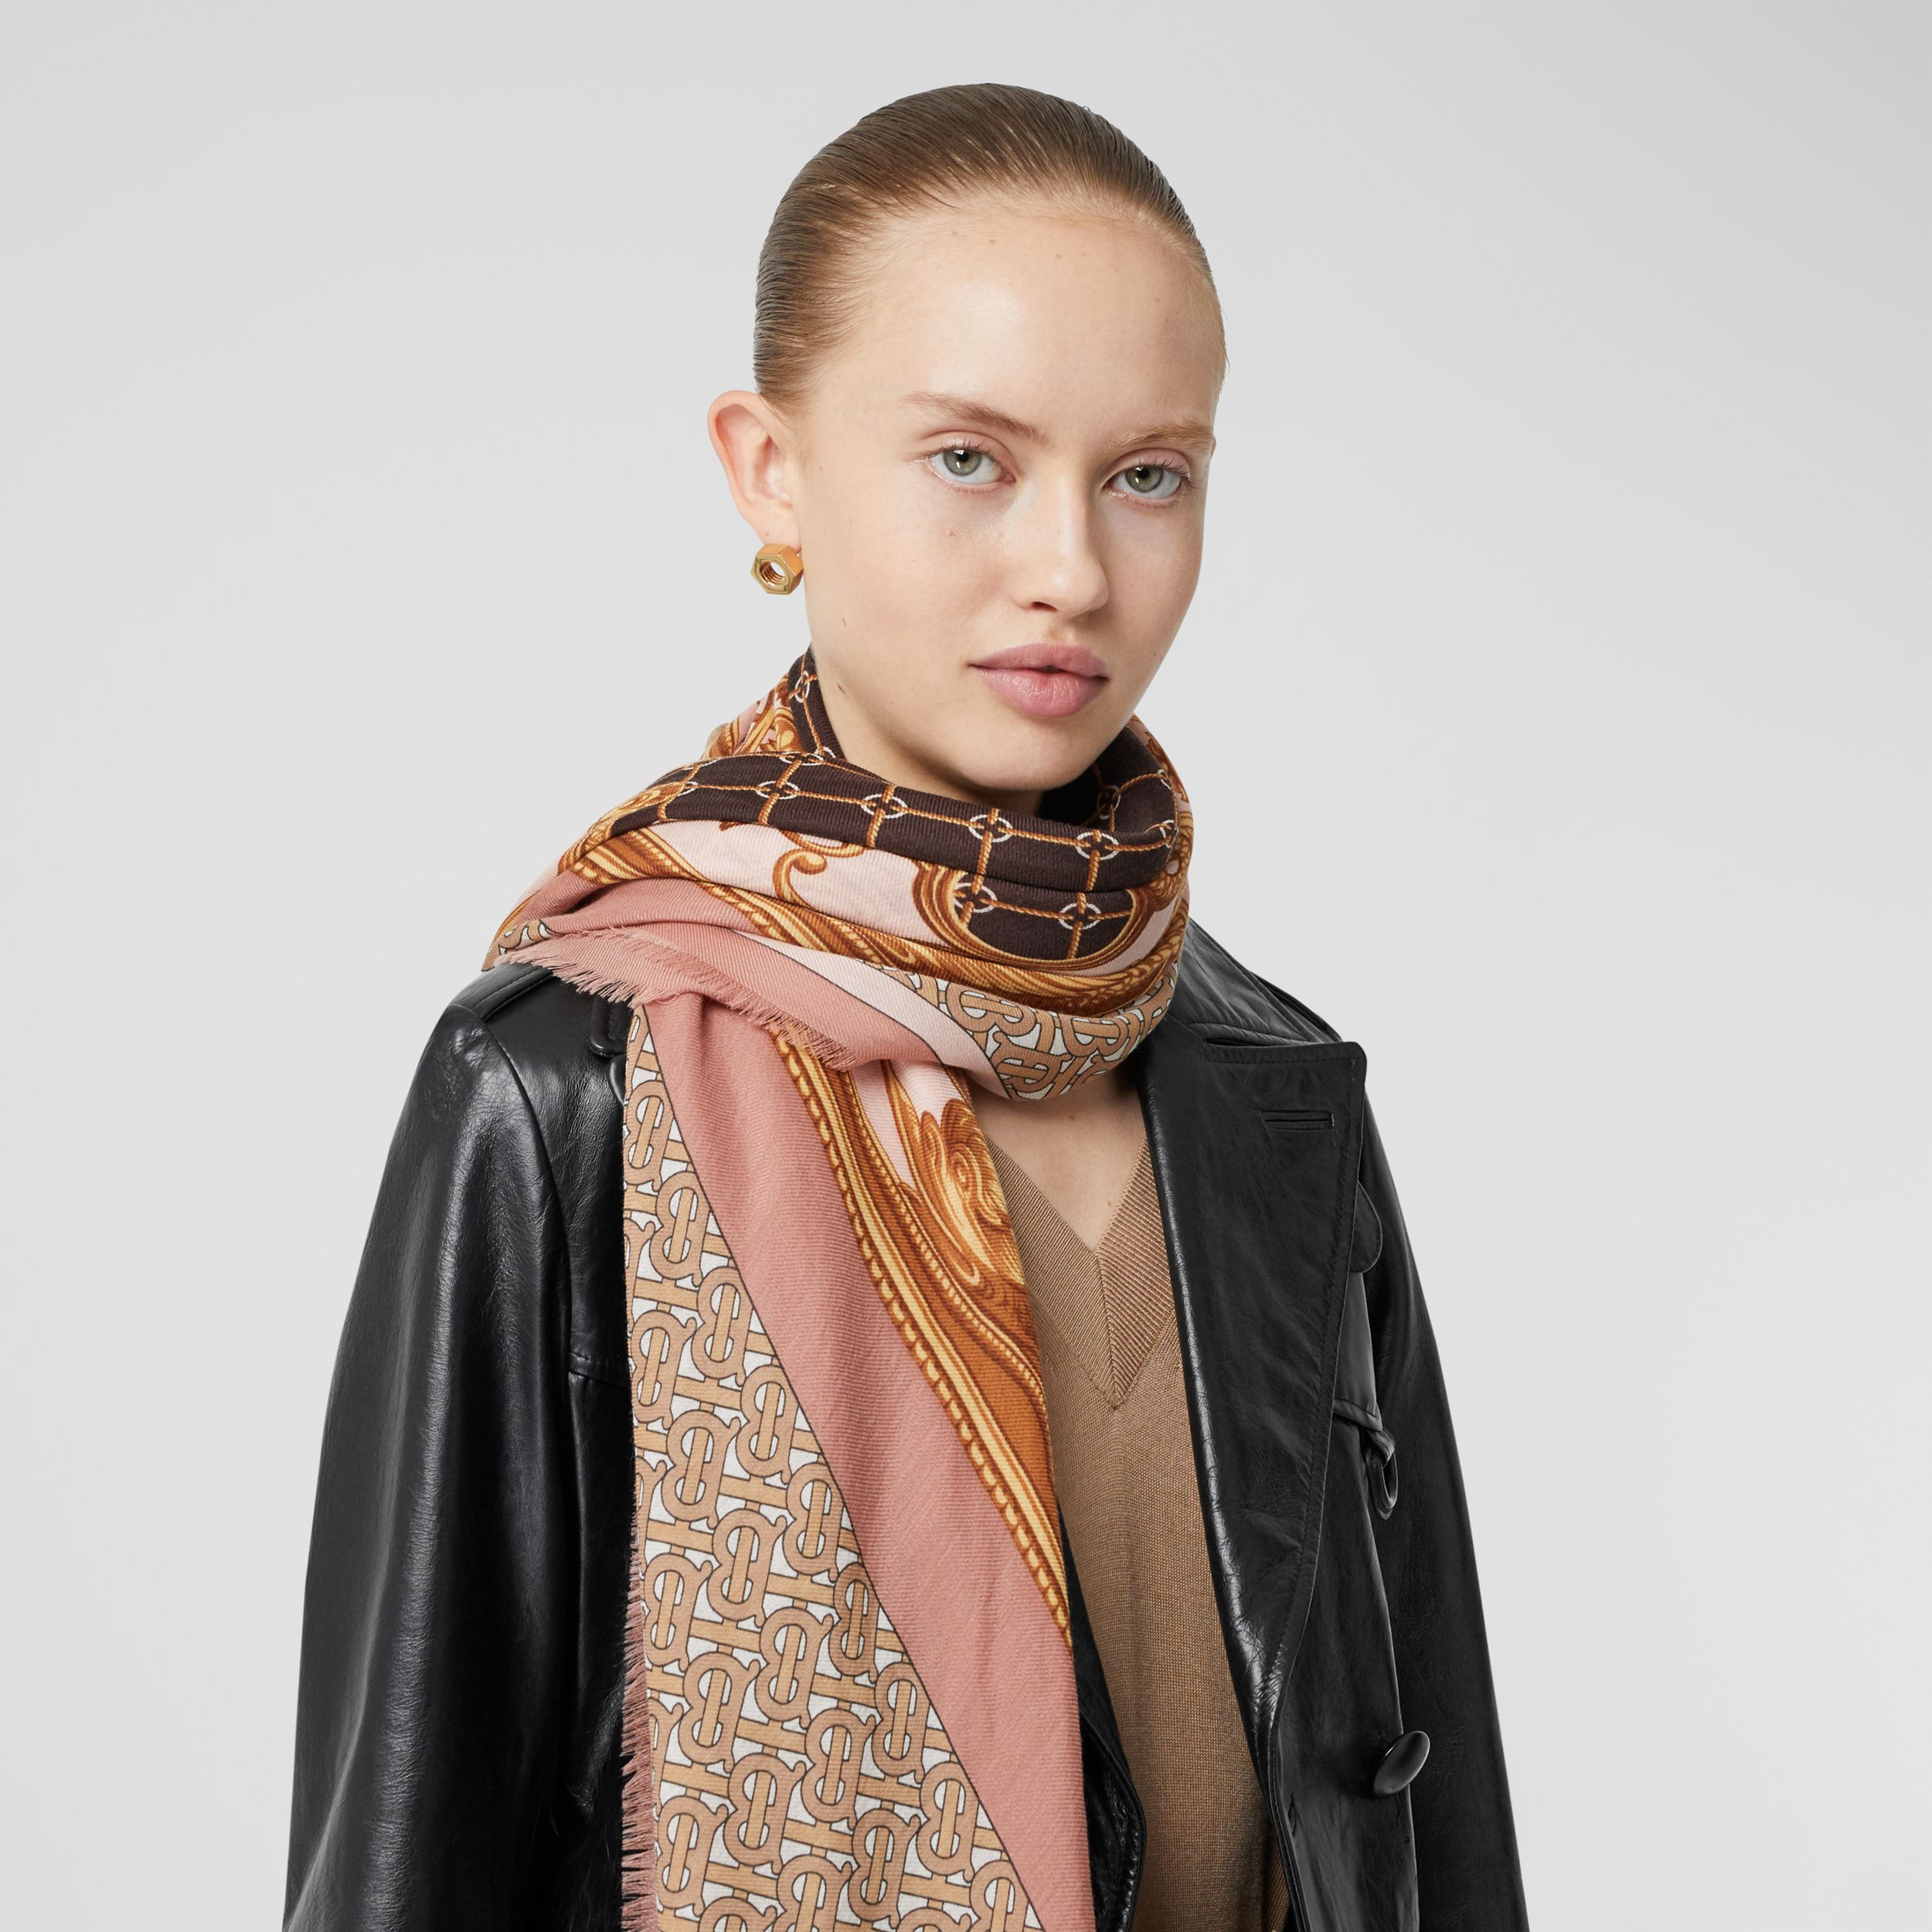 Archive Scarf Print Cashmere Large Square Scarf in Pale Blush | Burberry Singapore - 3